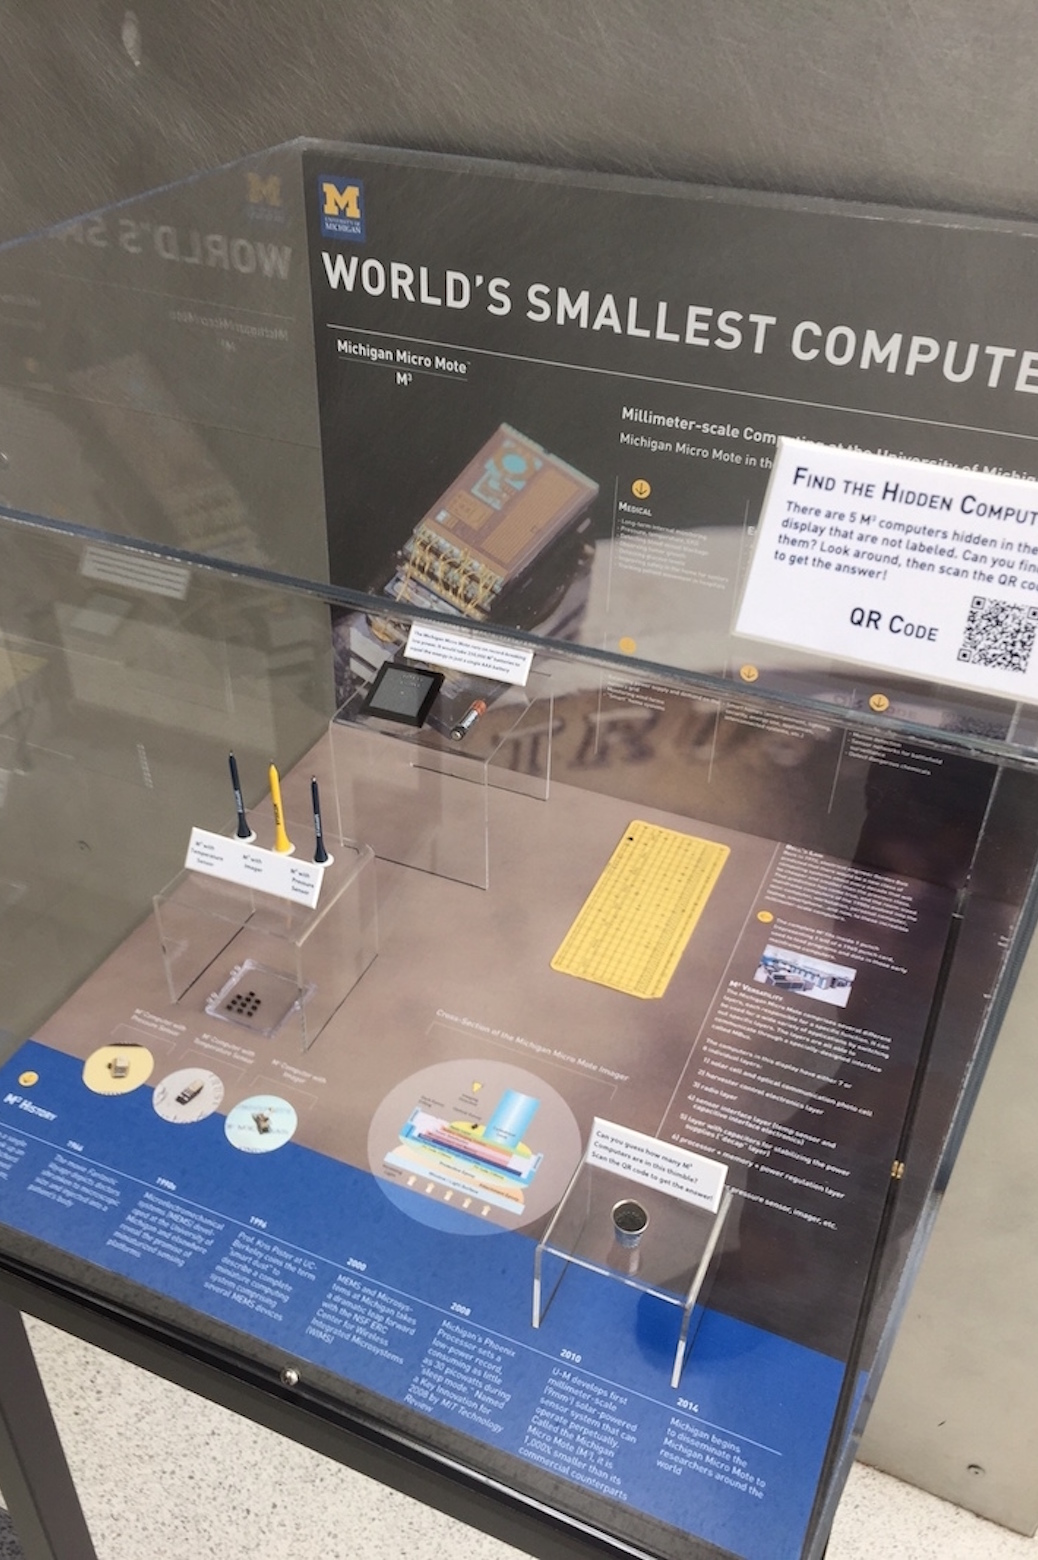 display case of the smallest computer